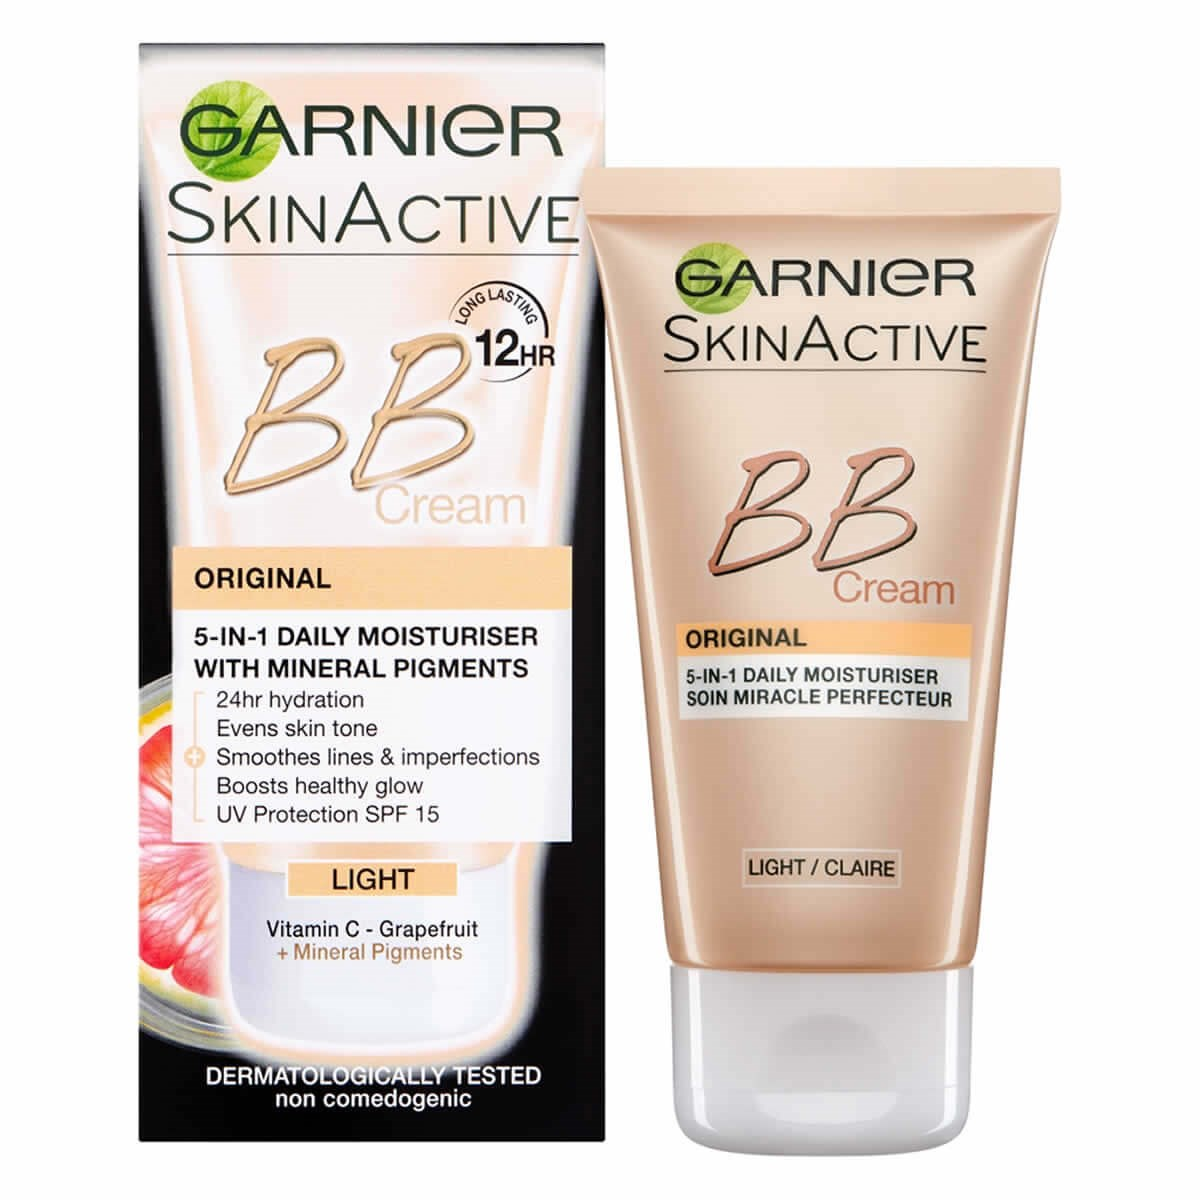 Garnier SkinActive BB Cream Original 5-in-1 Daily Moisturiser Light